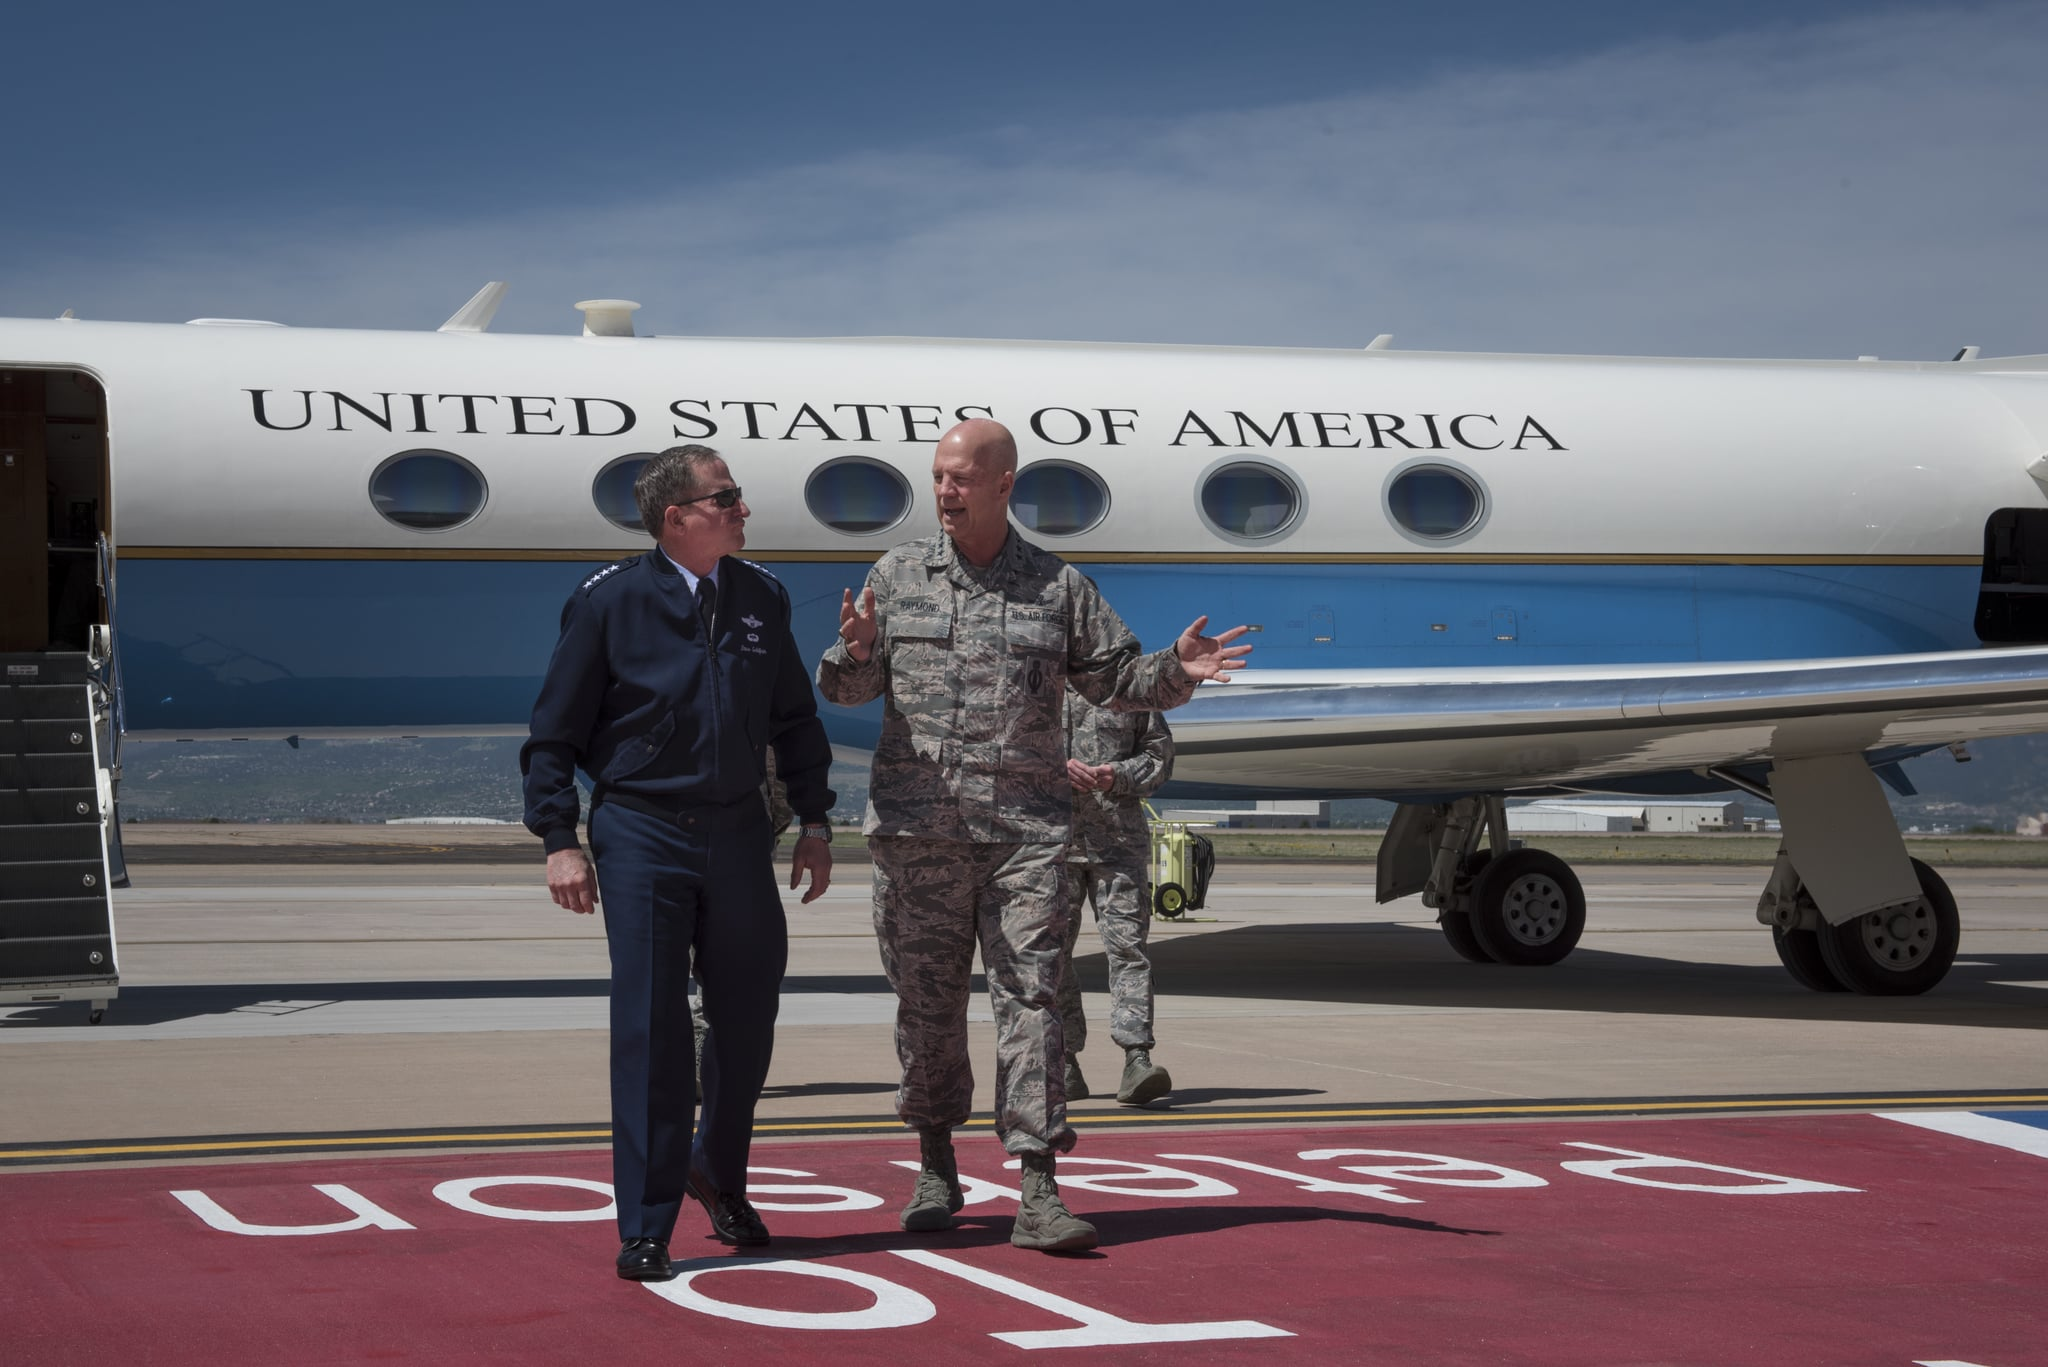 US Air Force Chief of Staff Gen David Goldfein walking with Air Force Space Command commander Gen Jay Raymond, Peterson Air Force Base, Colorado, May 22, 2018. Image courtesy Senior Airman Dennis Hoffman / U.S. Northern Command. (Photo by Smith Collection/Gado/Getty Images)